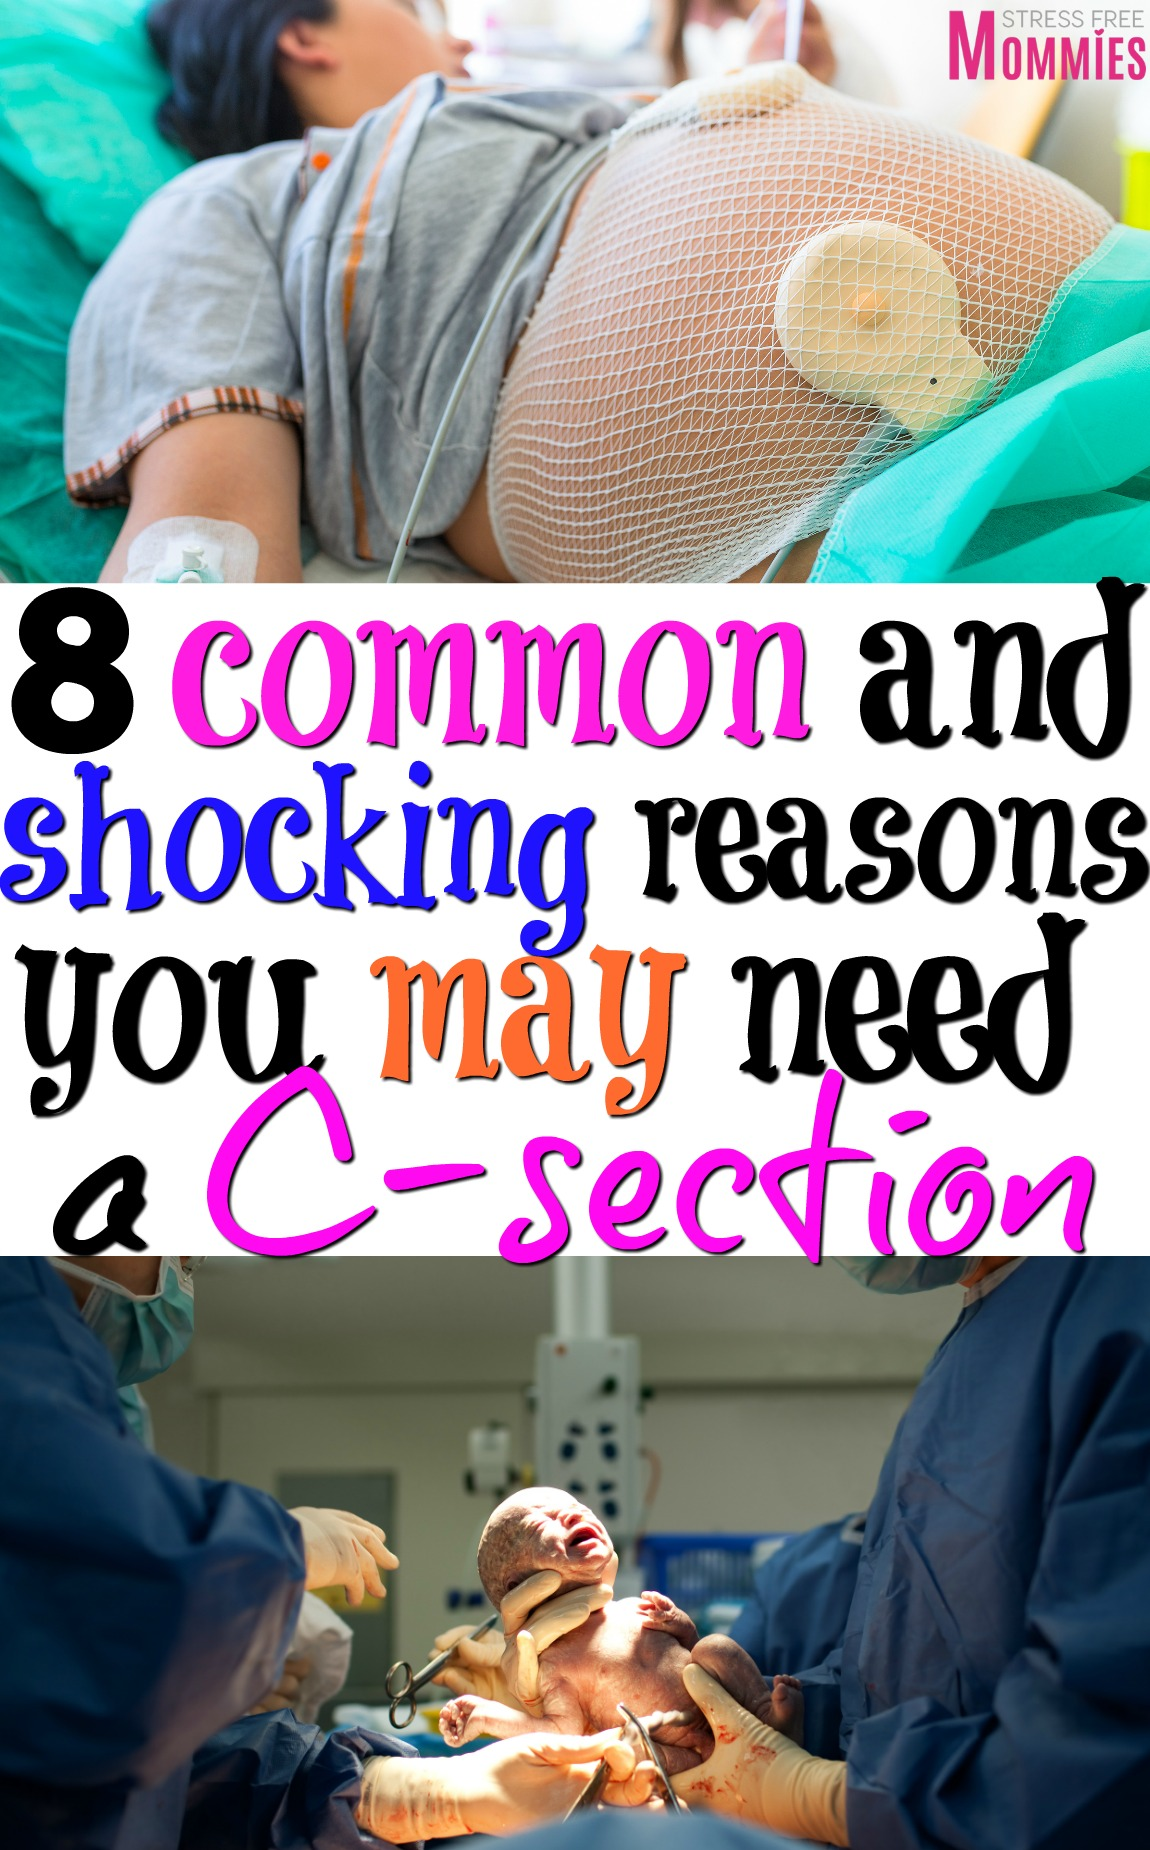 8 common and shocking reasons you may need a c-section - A helpful list of things that happen during labor that leads to a C-section. #pregnancy #C-section #labor #birth